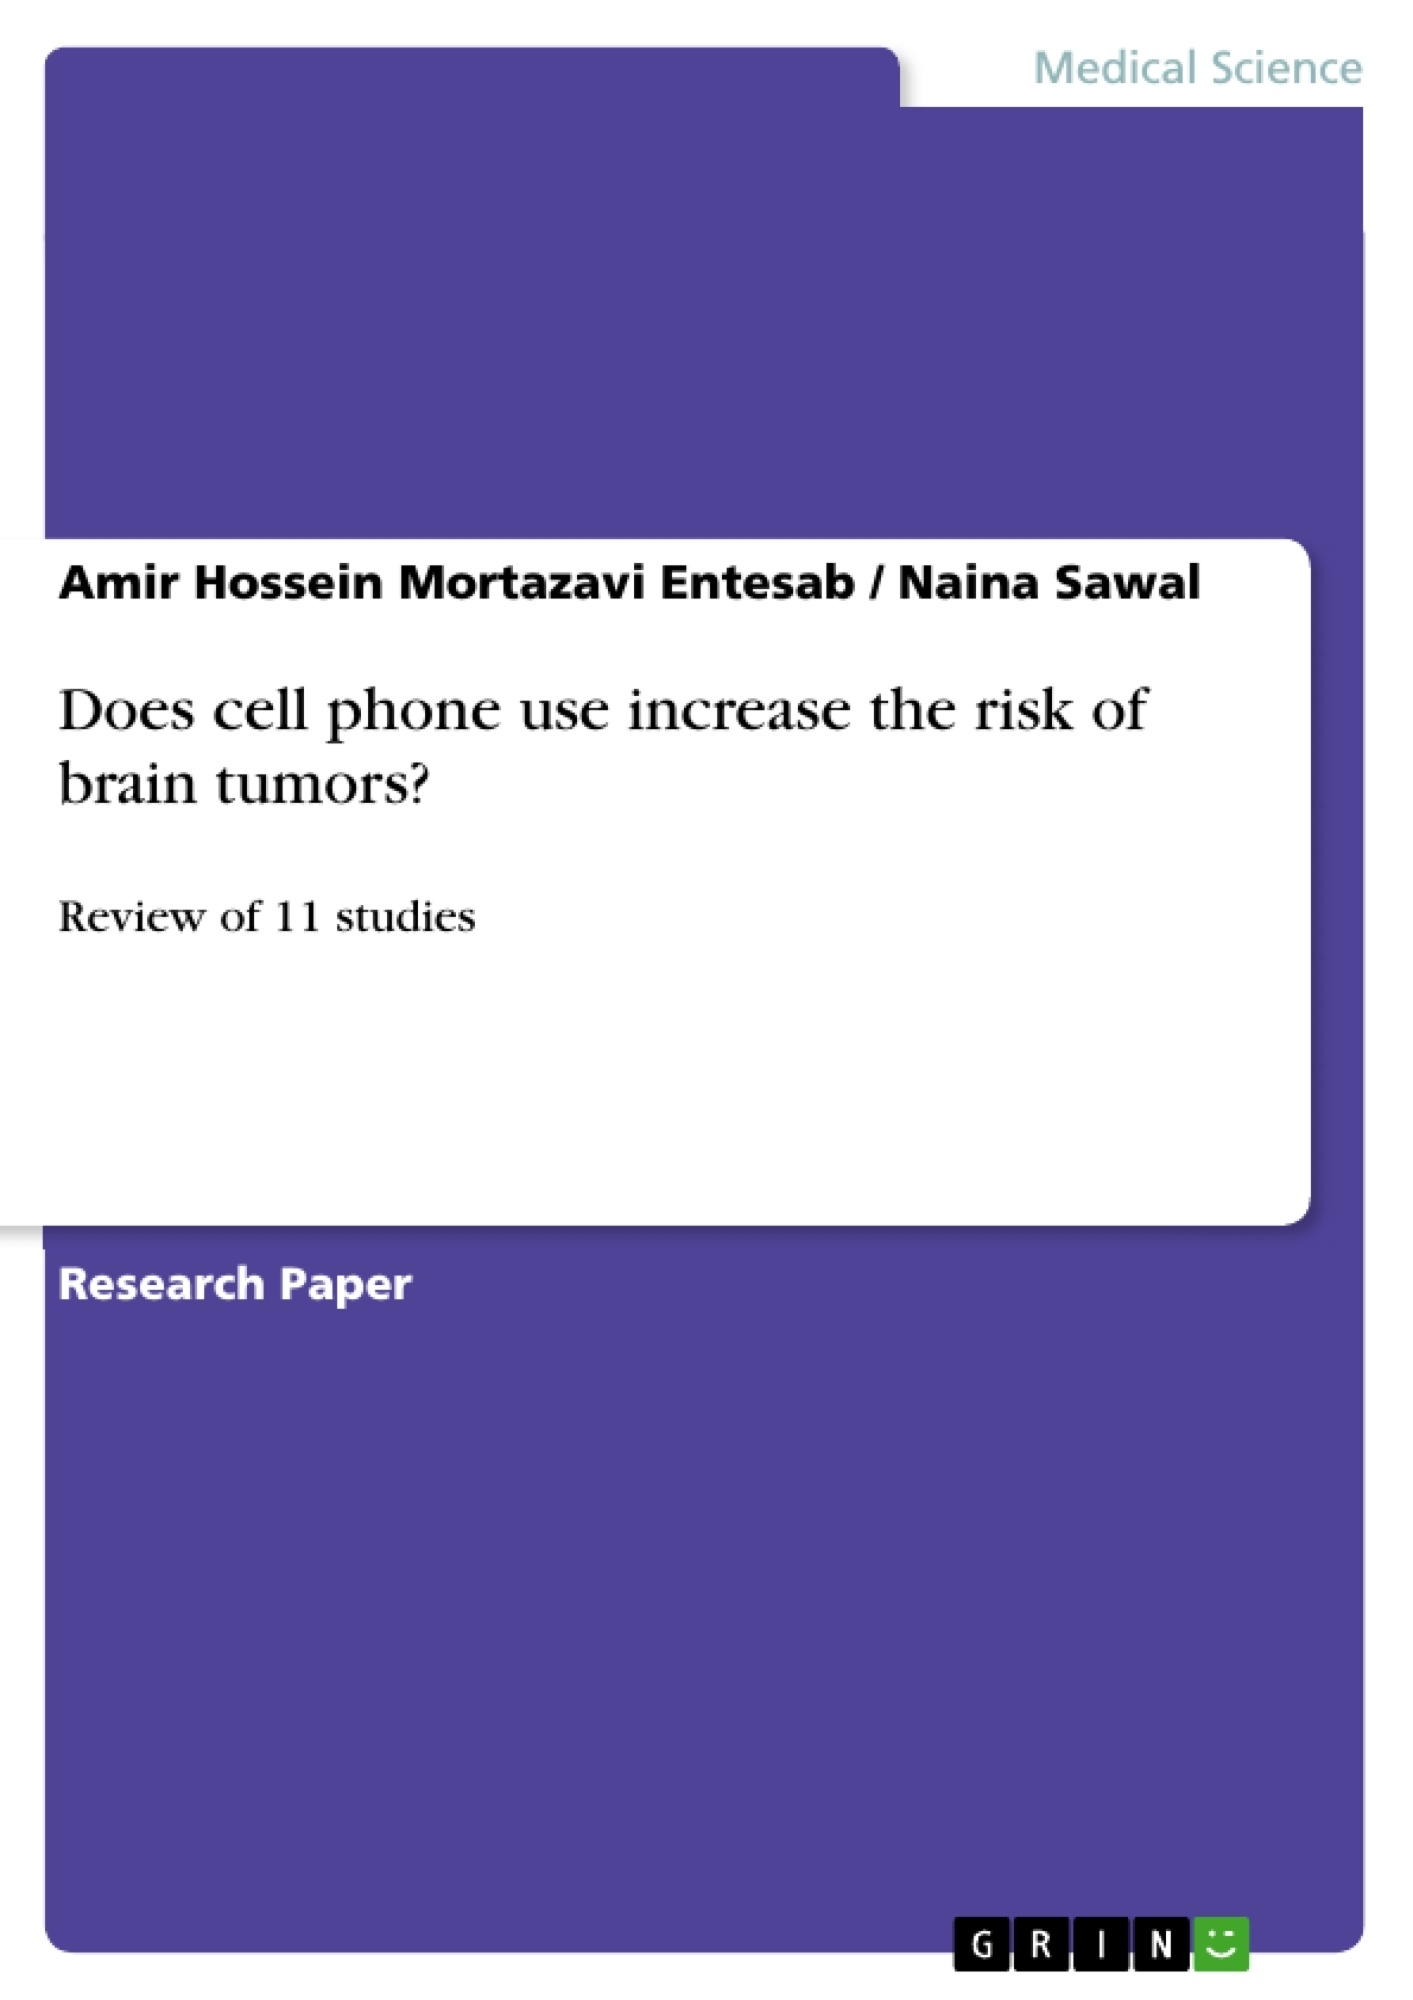 Title: Does cell phone use increase the risk of brain tumors?